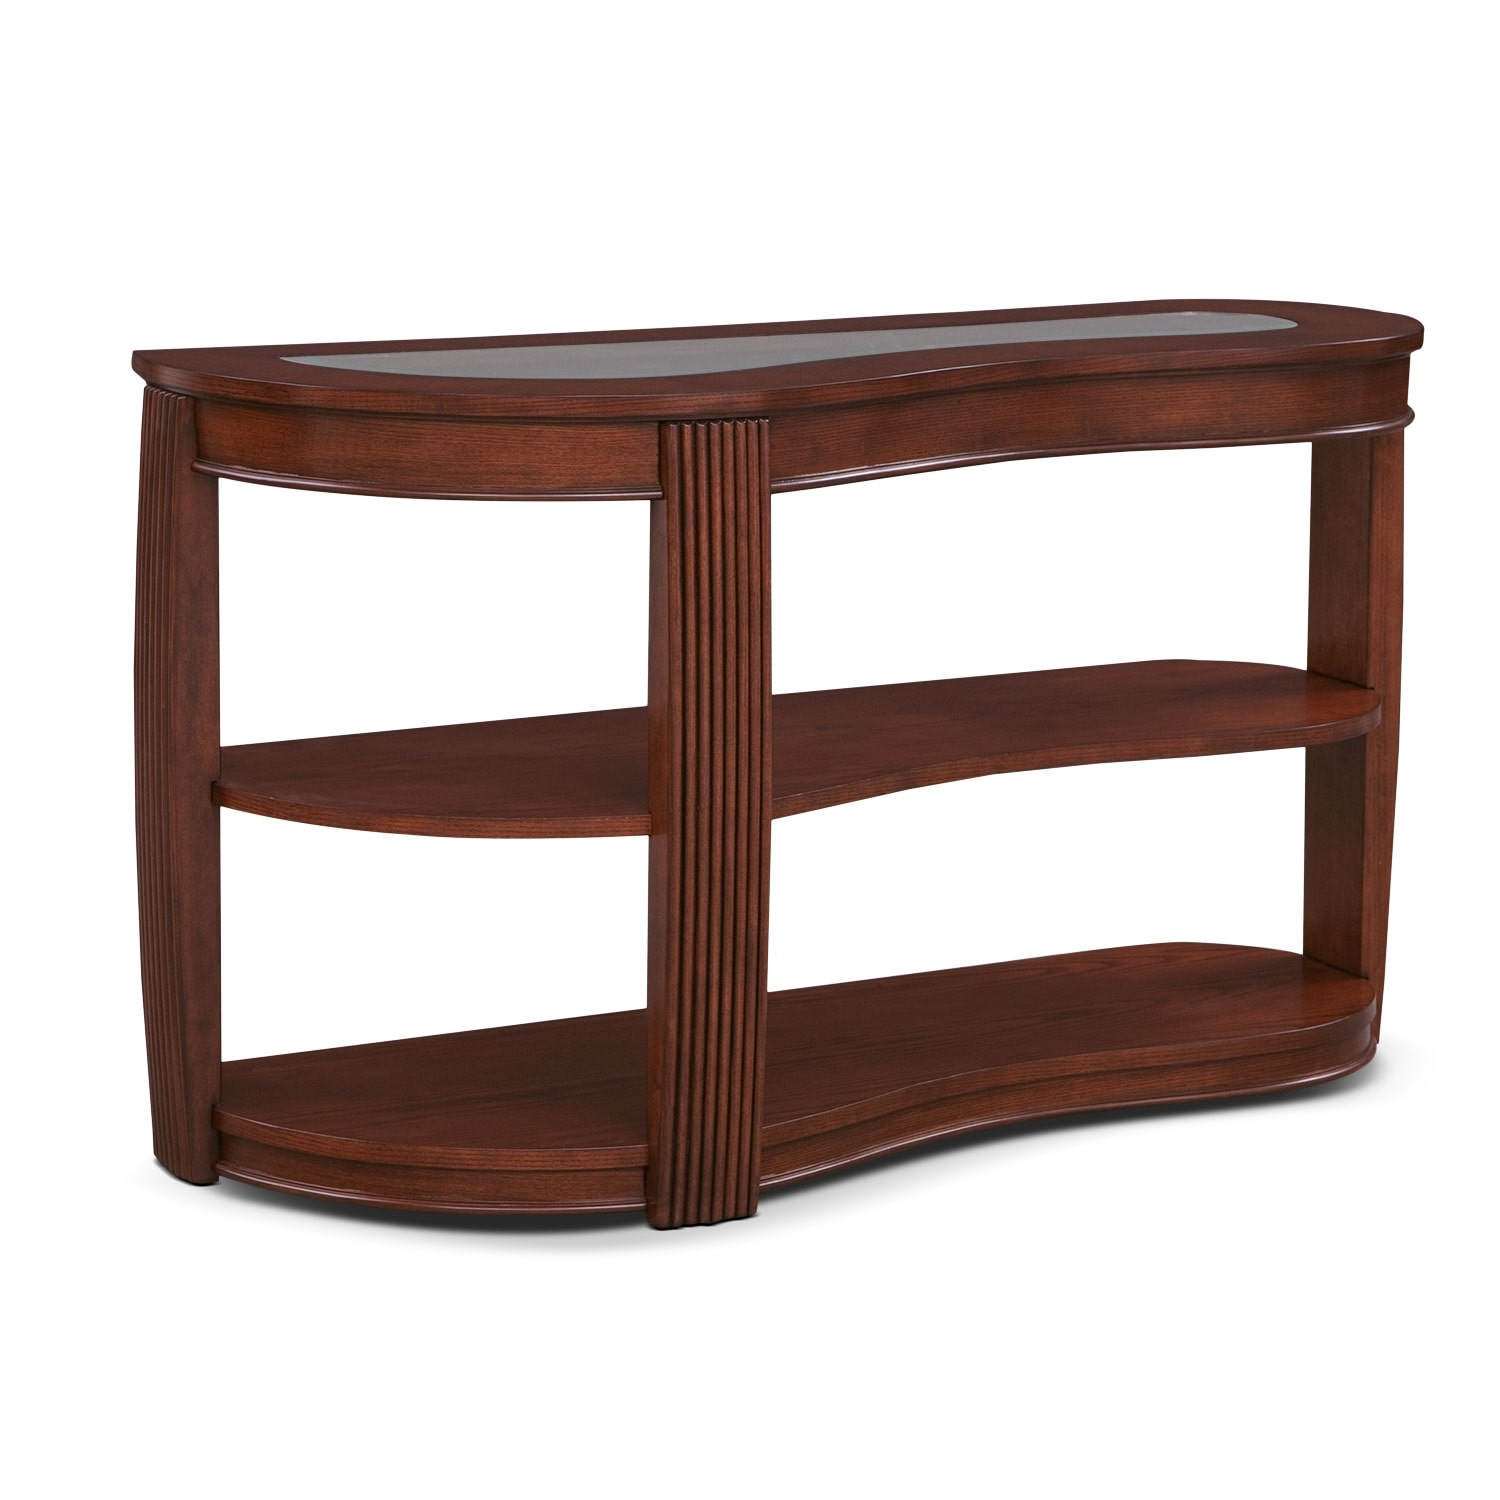 Teardrop Sofa Table - Burnt Umber